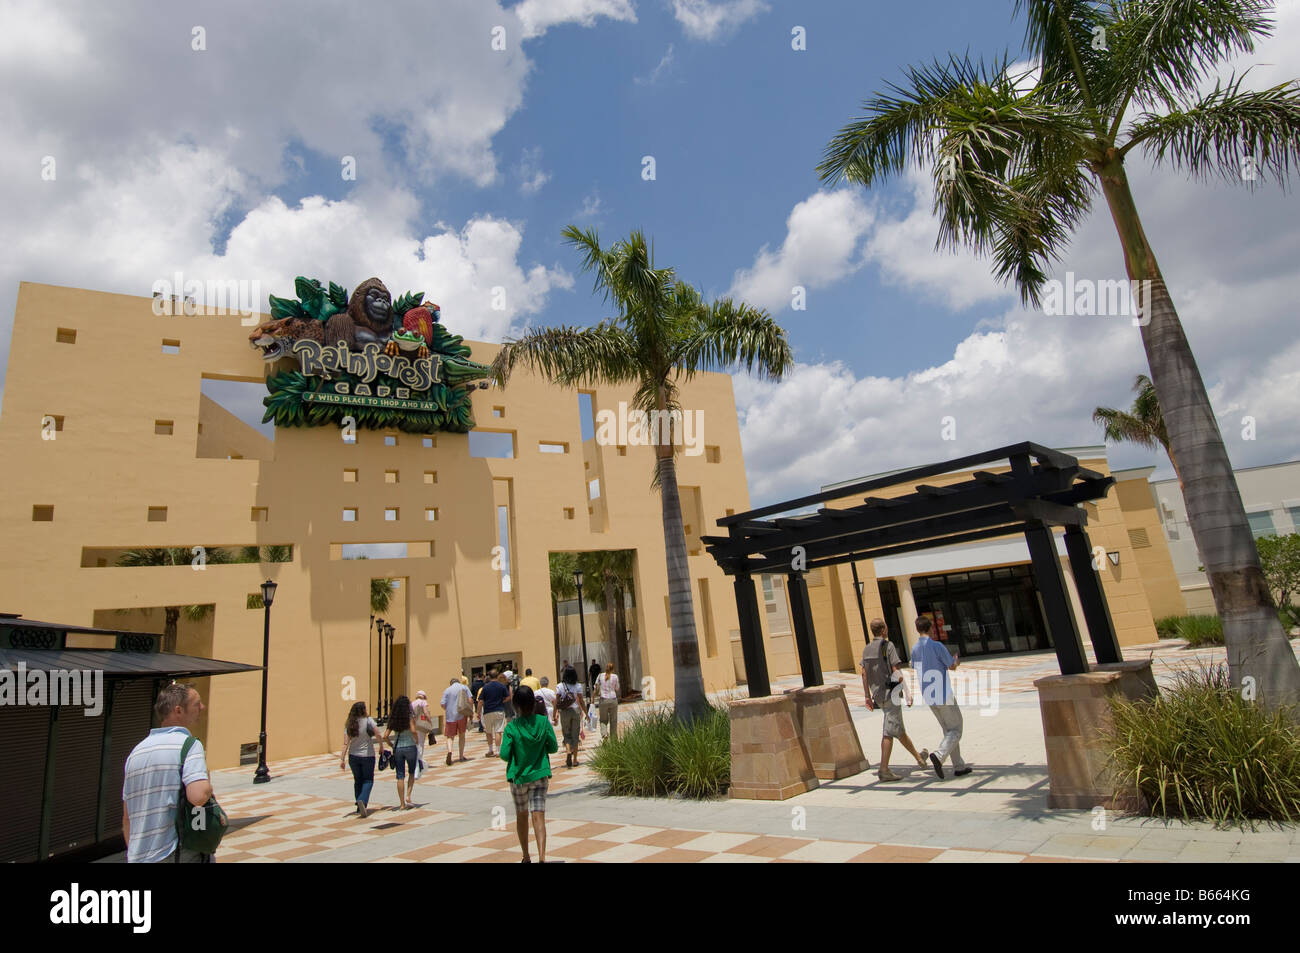 Sawgrass Mills Mall Fort Lauderdale Gold Coast Florida United States of America - Stock Image